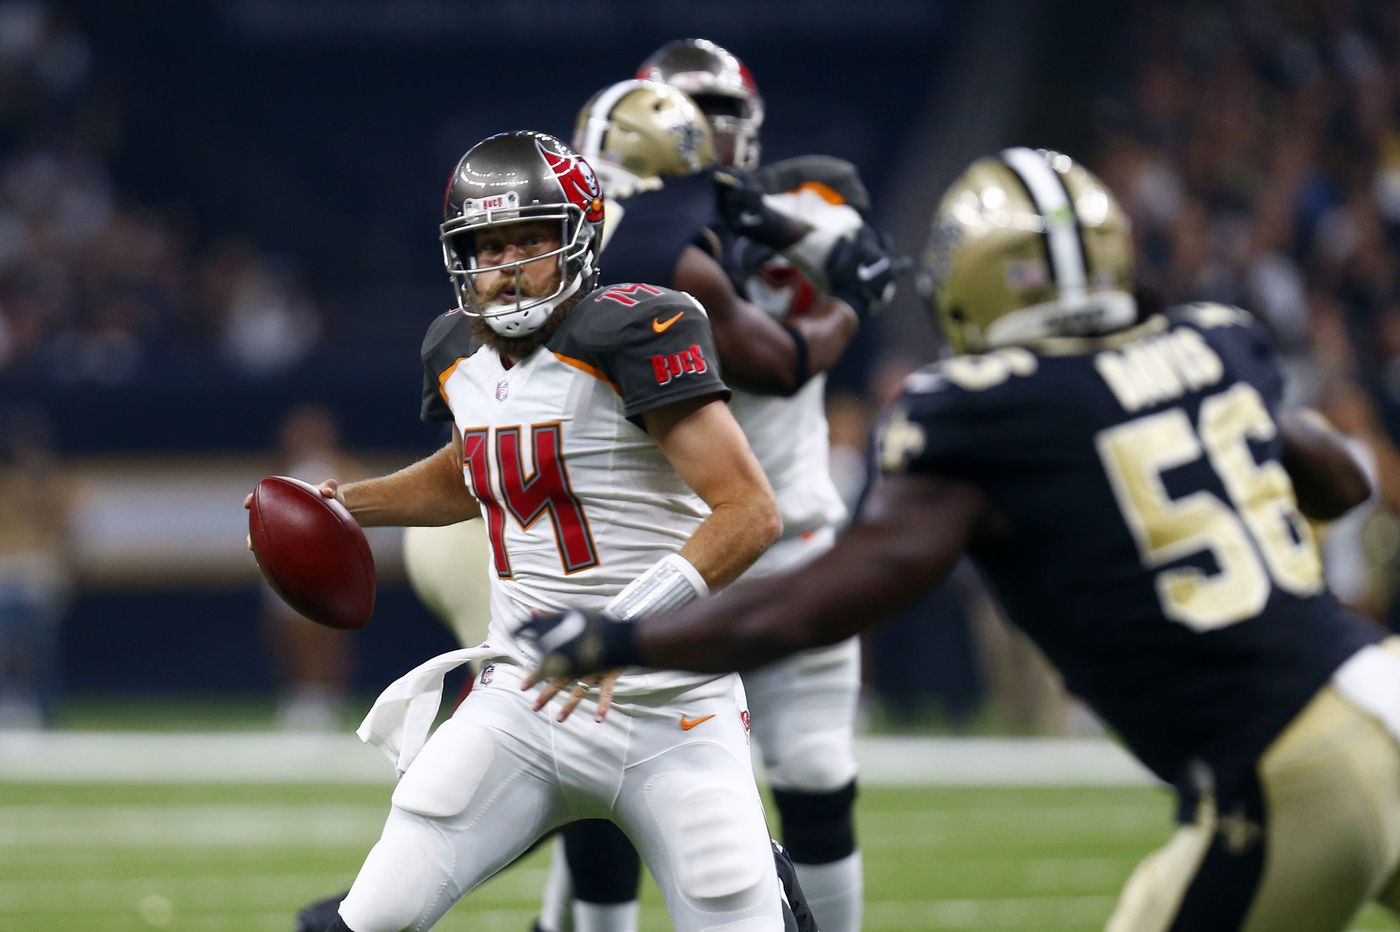 Bucs' Ryan Fitzpatrick, like Eagles' Nick Foles, has been way up and way down